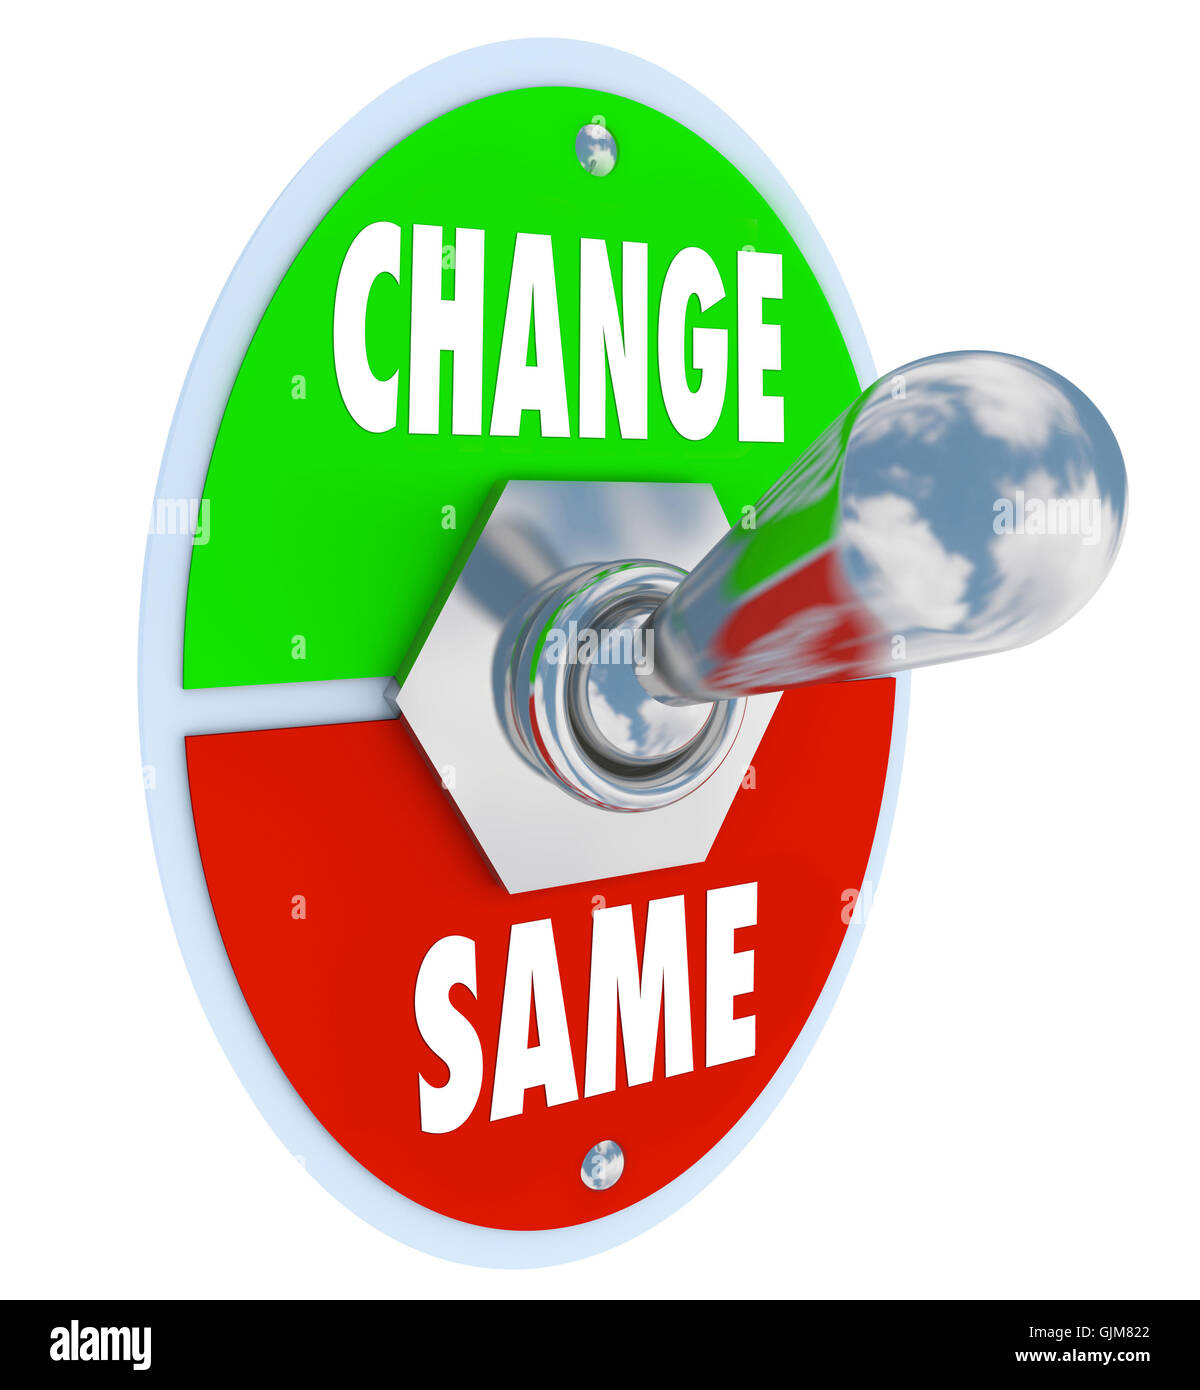 Change vs Same - Choose to Improve Your Situation - Stock Image